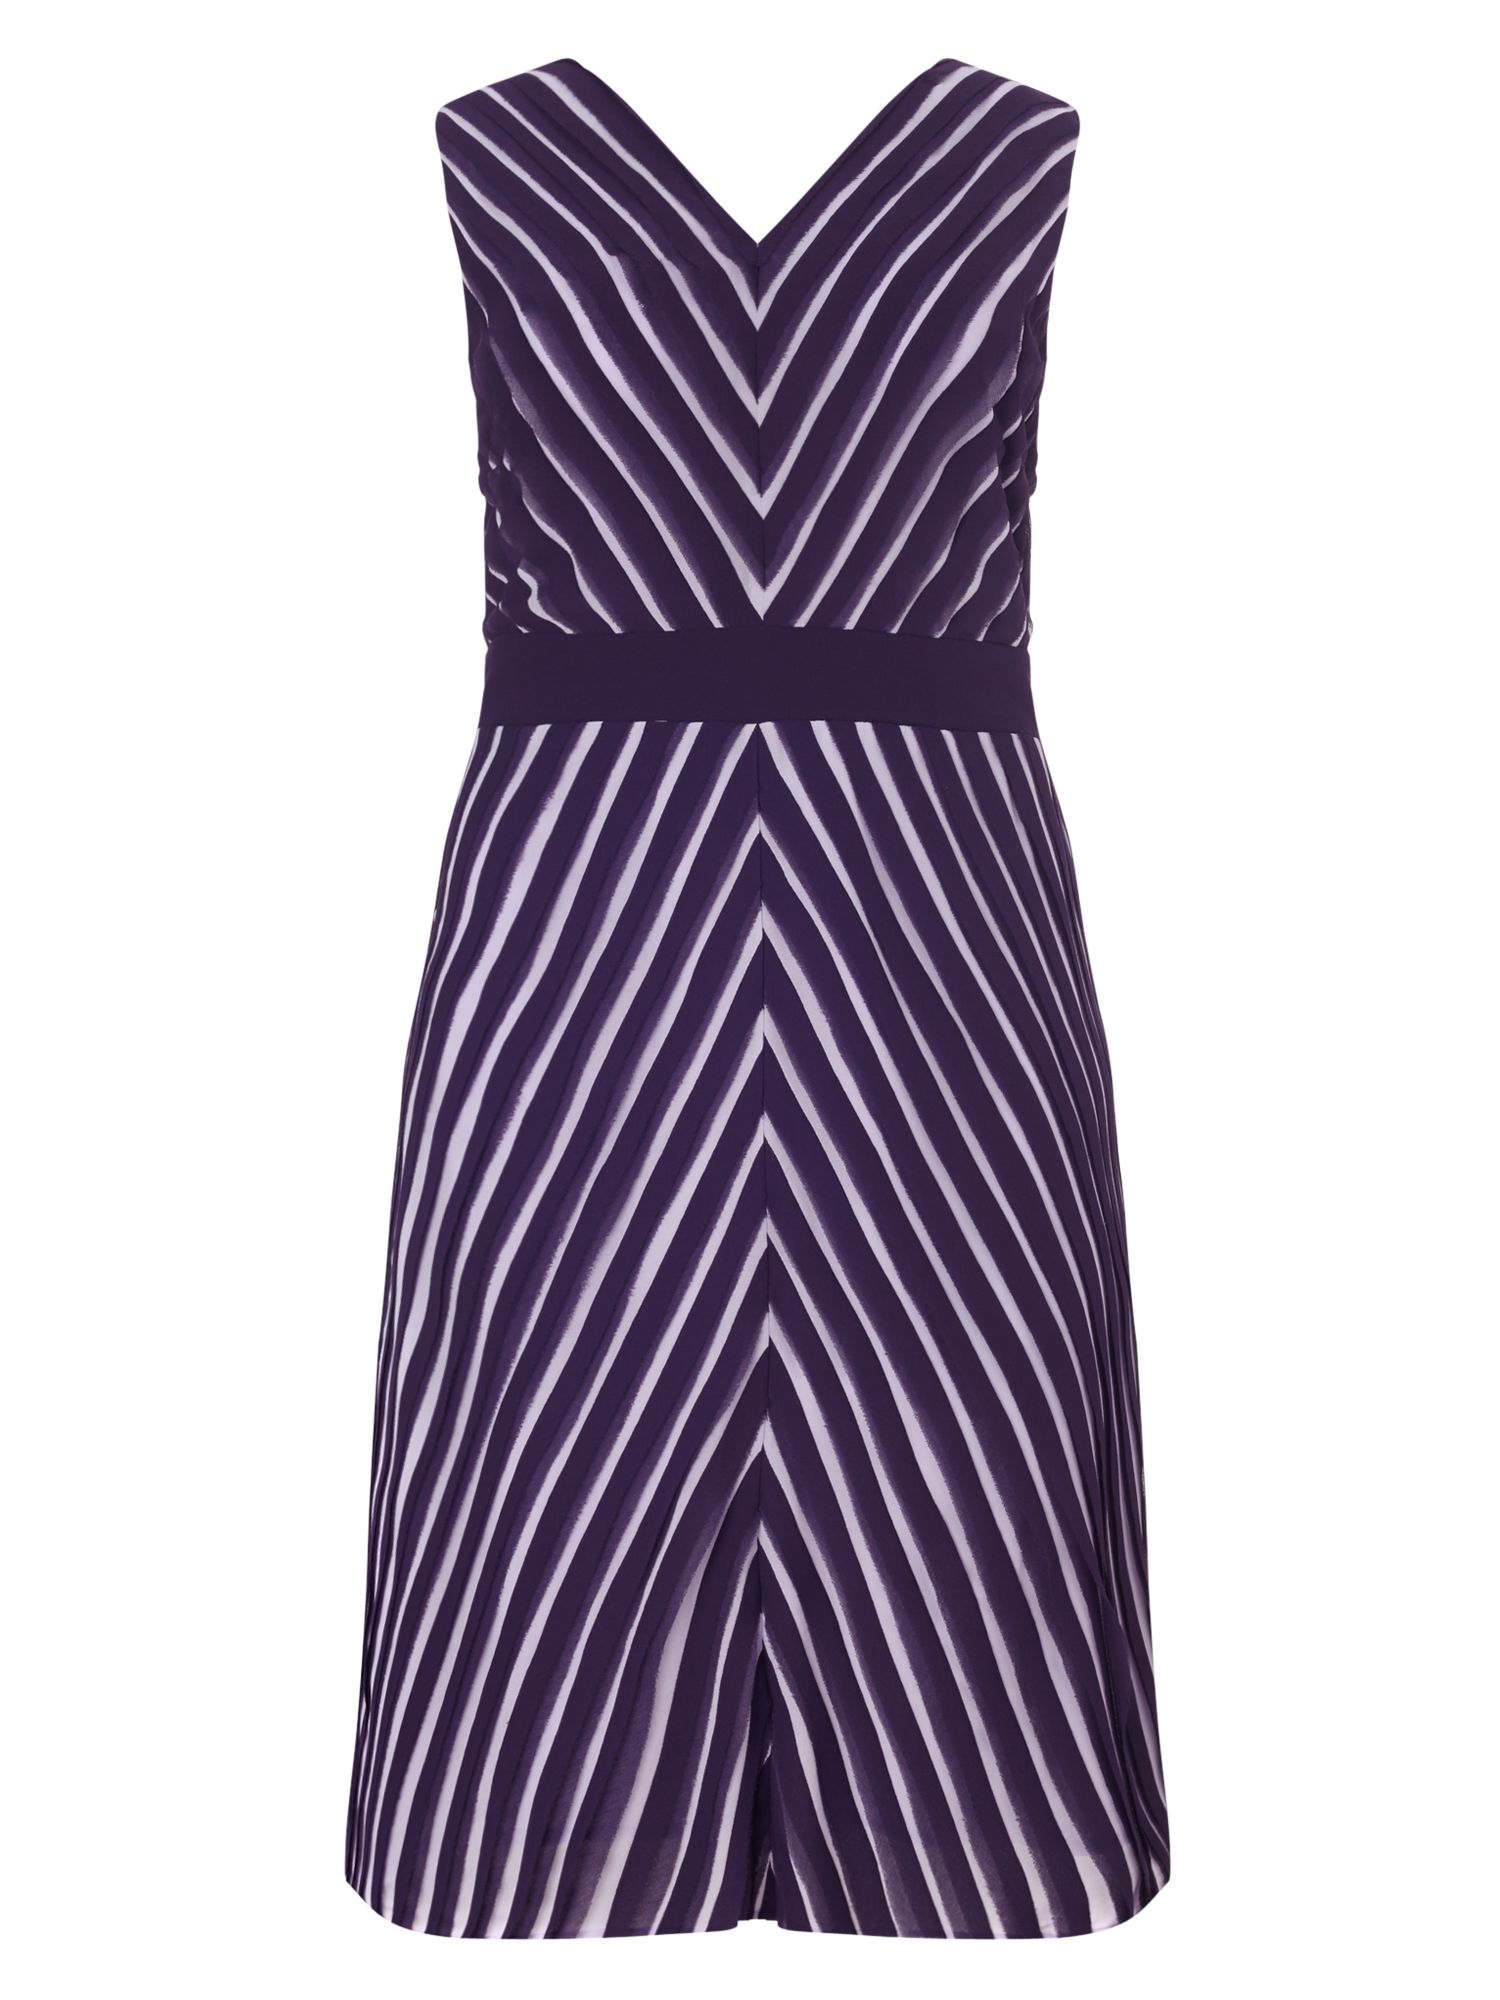 Studio 8 Brooklyn Dress, Purple